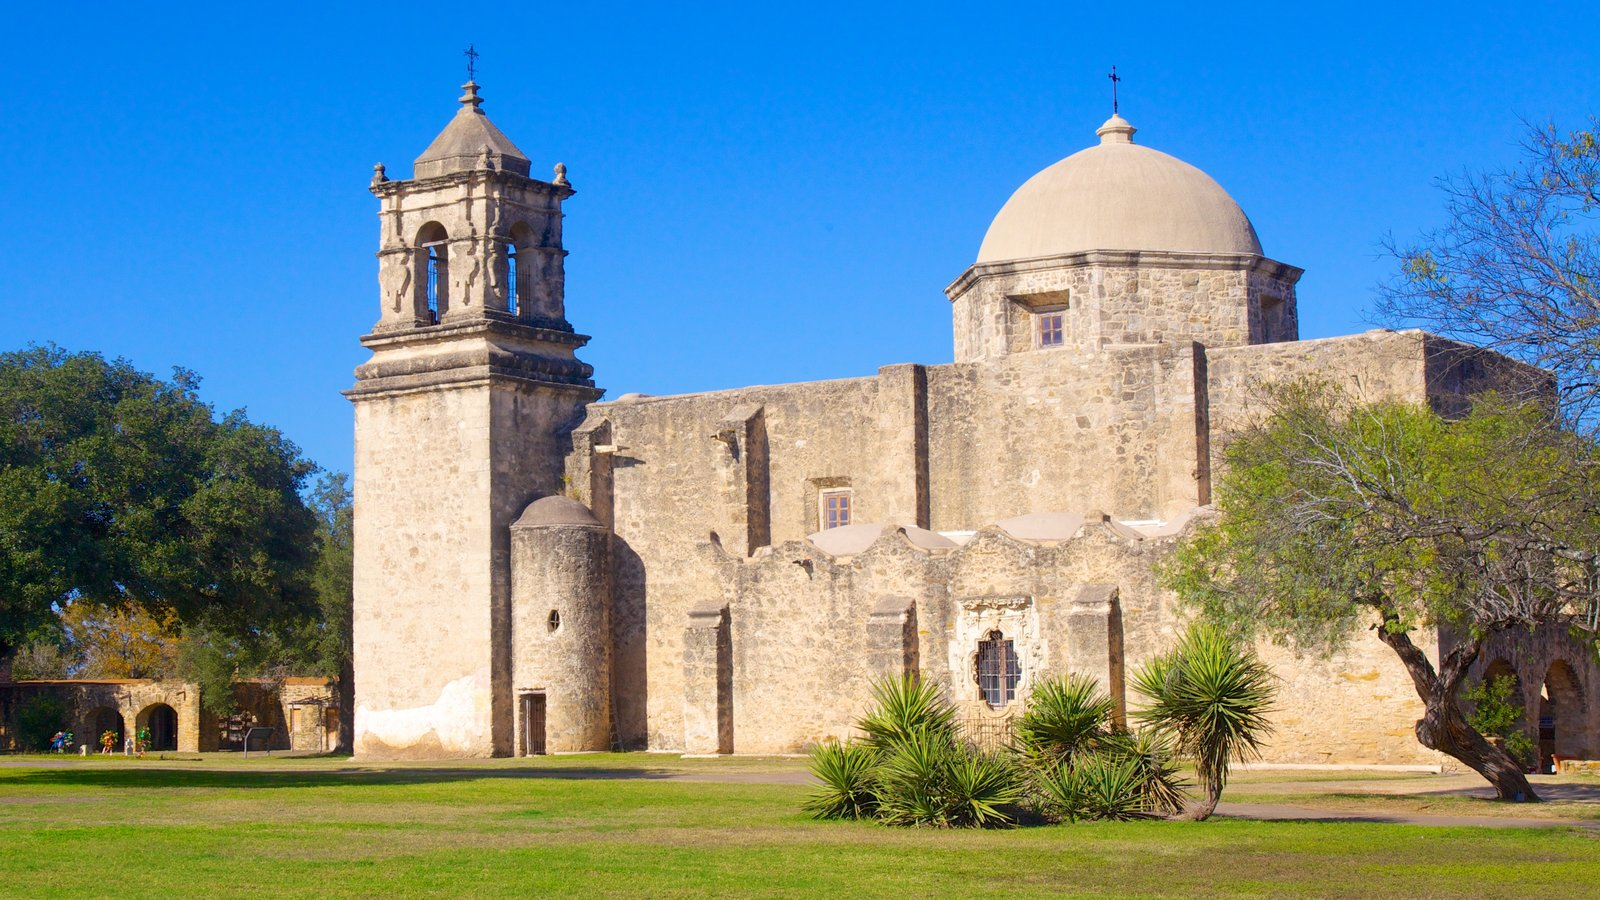 San Antonio Missions National Park showing a garden, chateau or palace and religious aspects